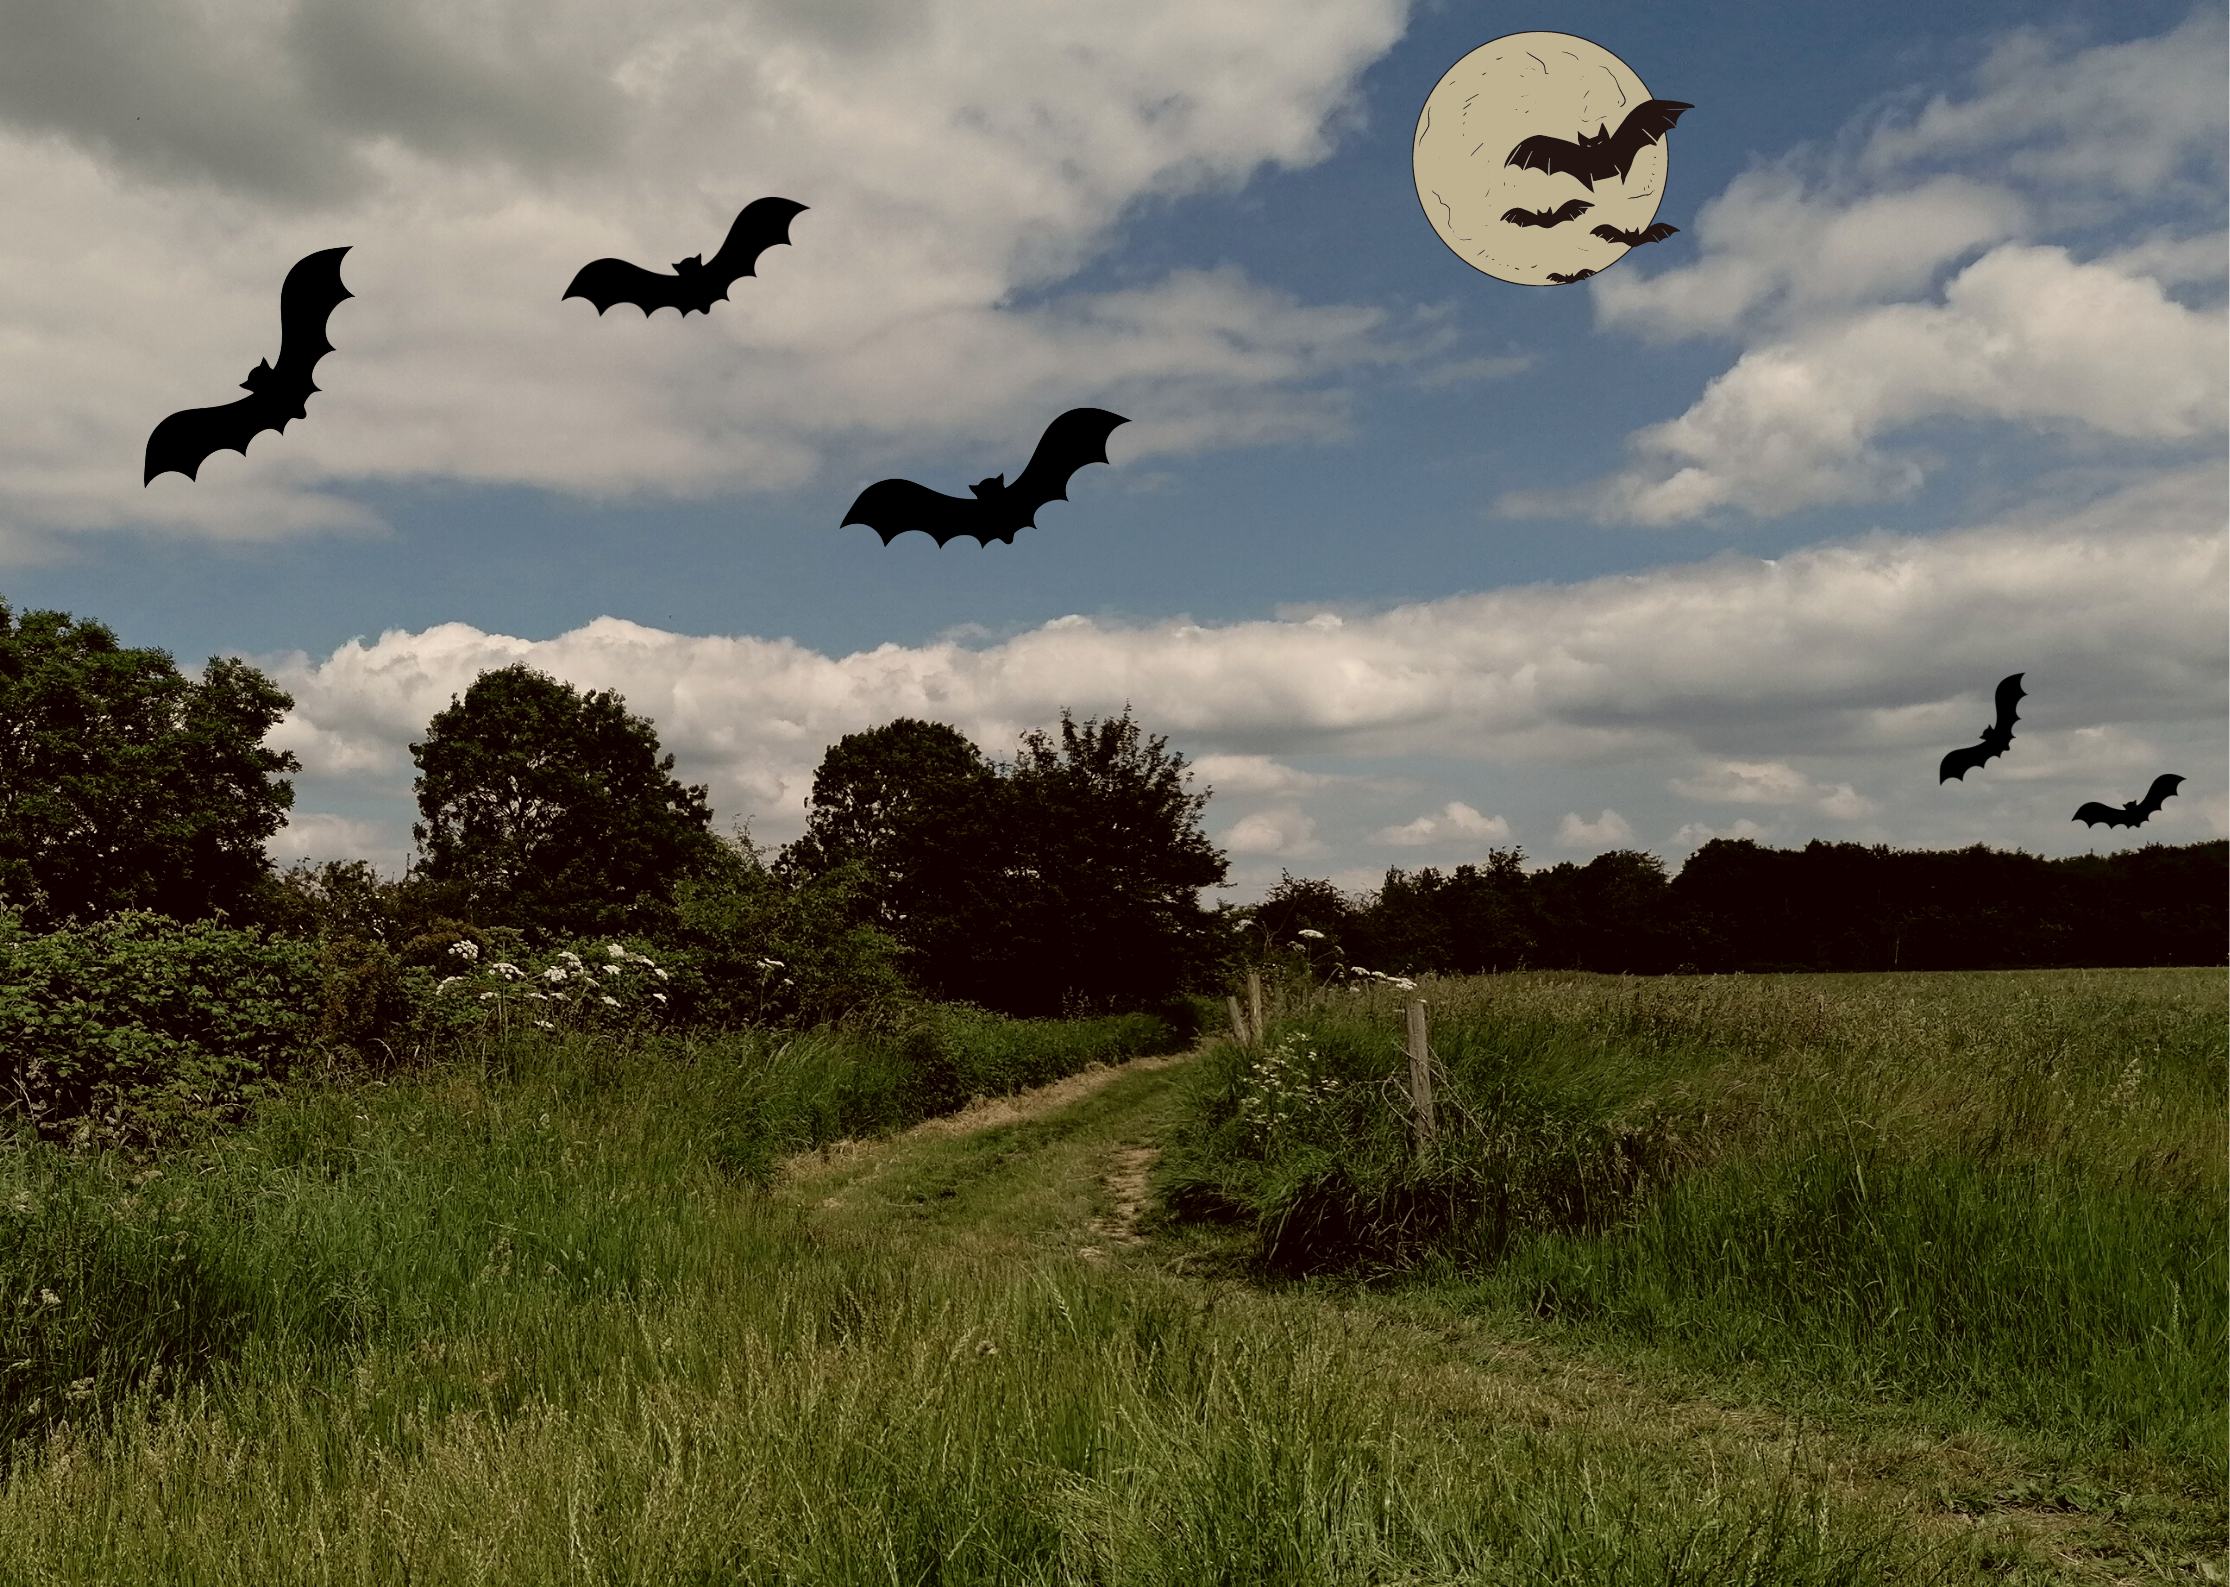 Bats flying over a field